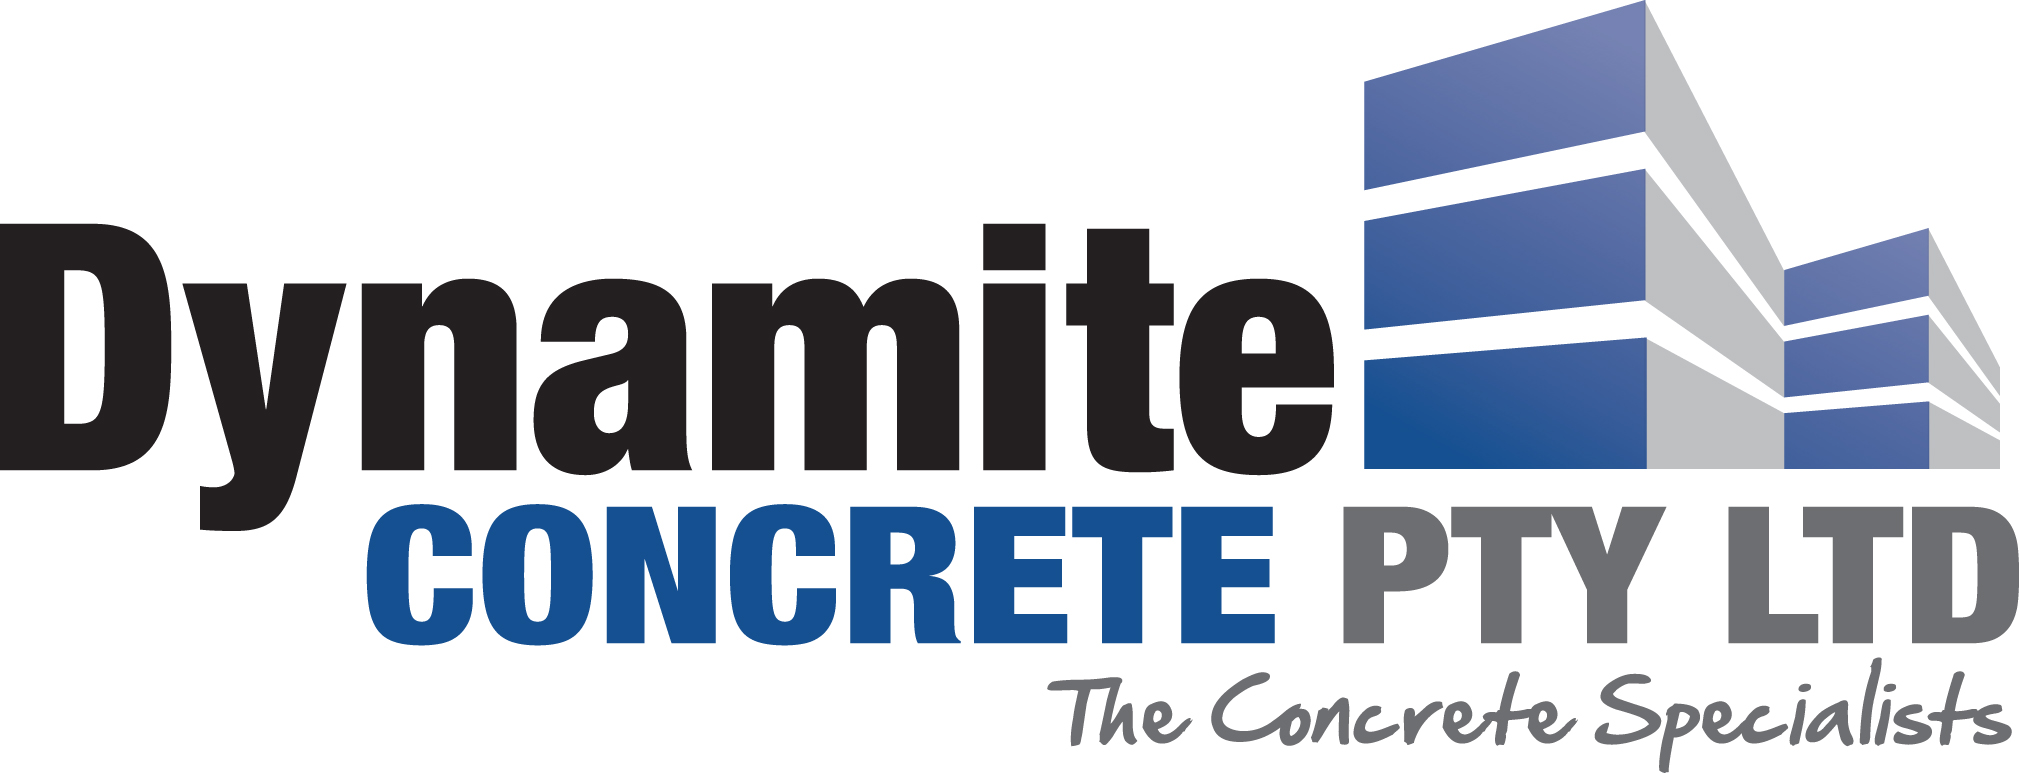 Dynamite Concrete Pty Ltd